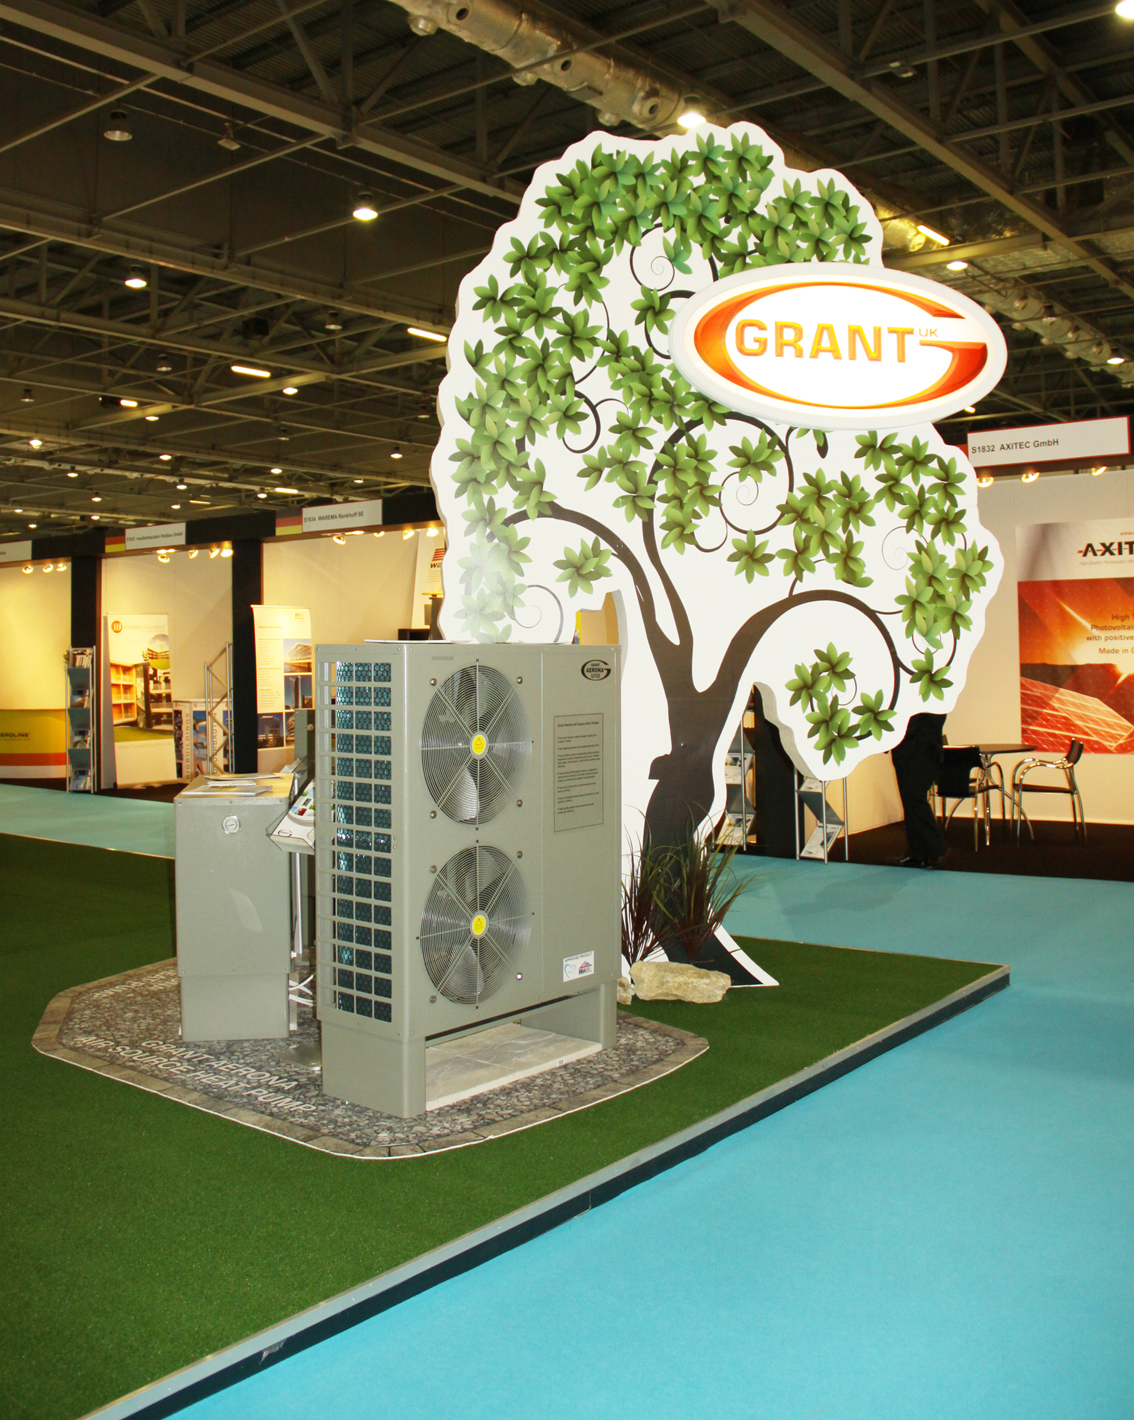 Grant products showcased at biggest Ecobuild yet